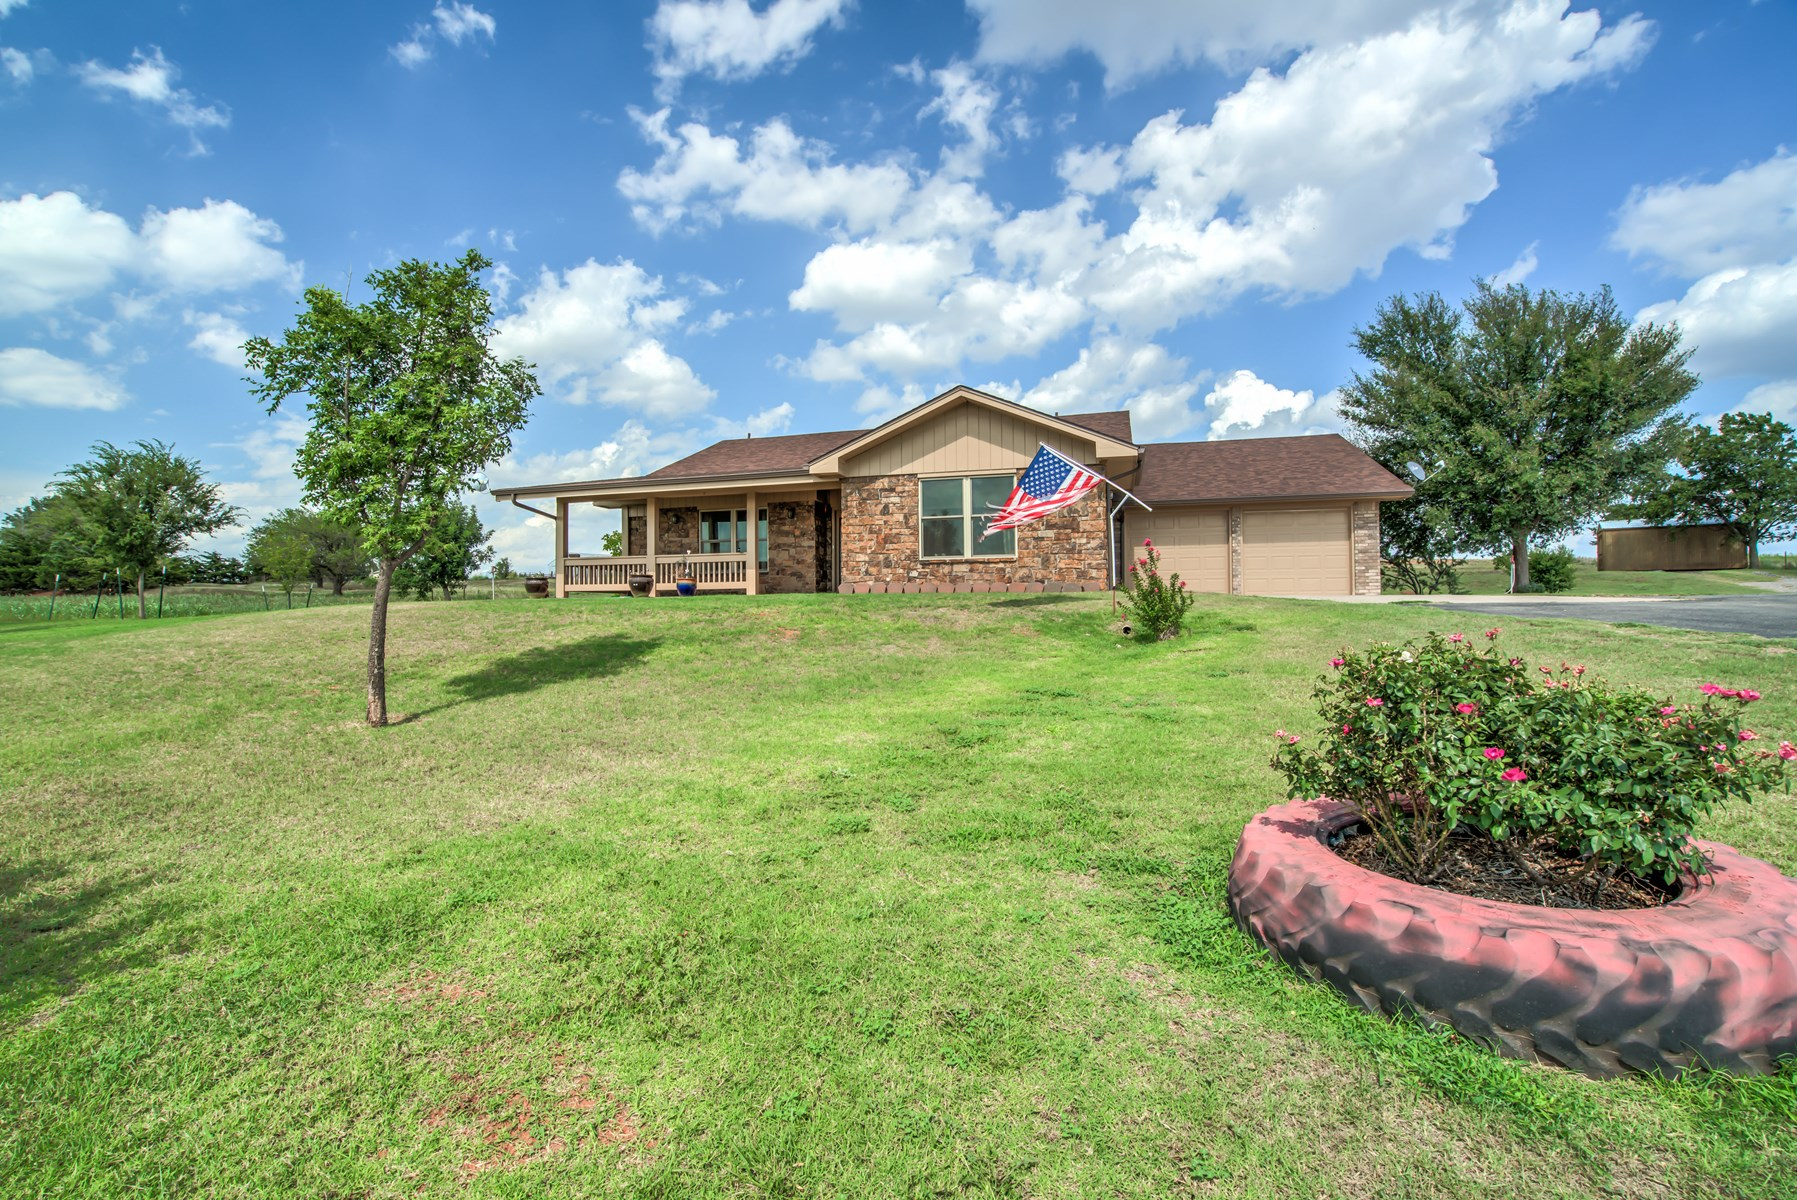 Country Home with Acreage for Sale, Custer County, OK